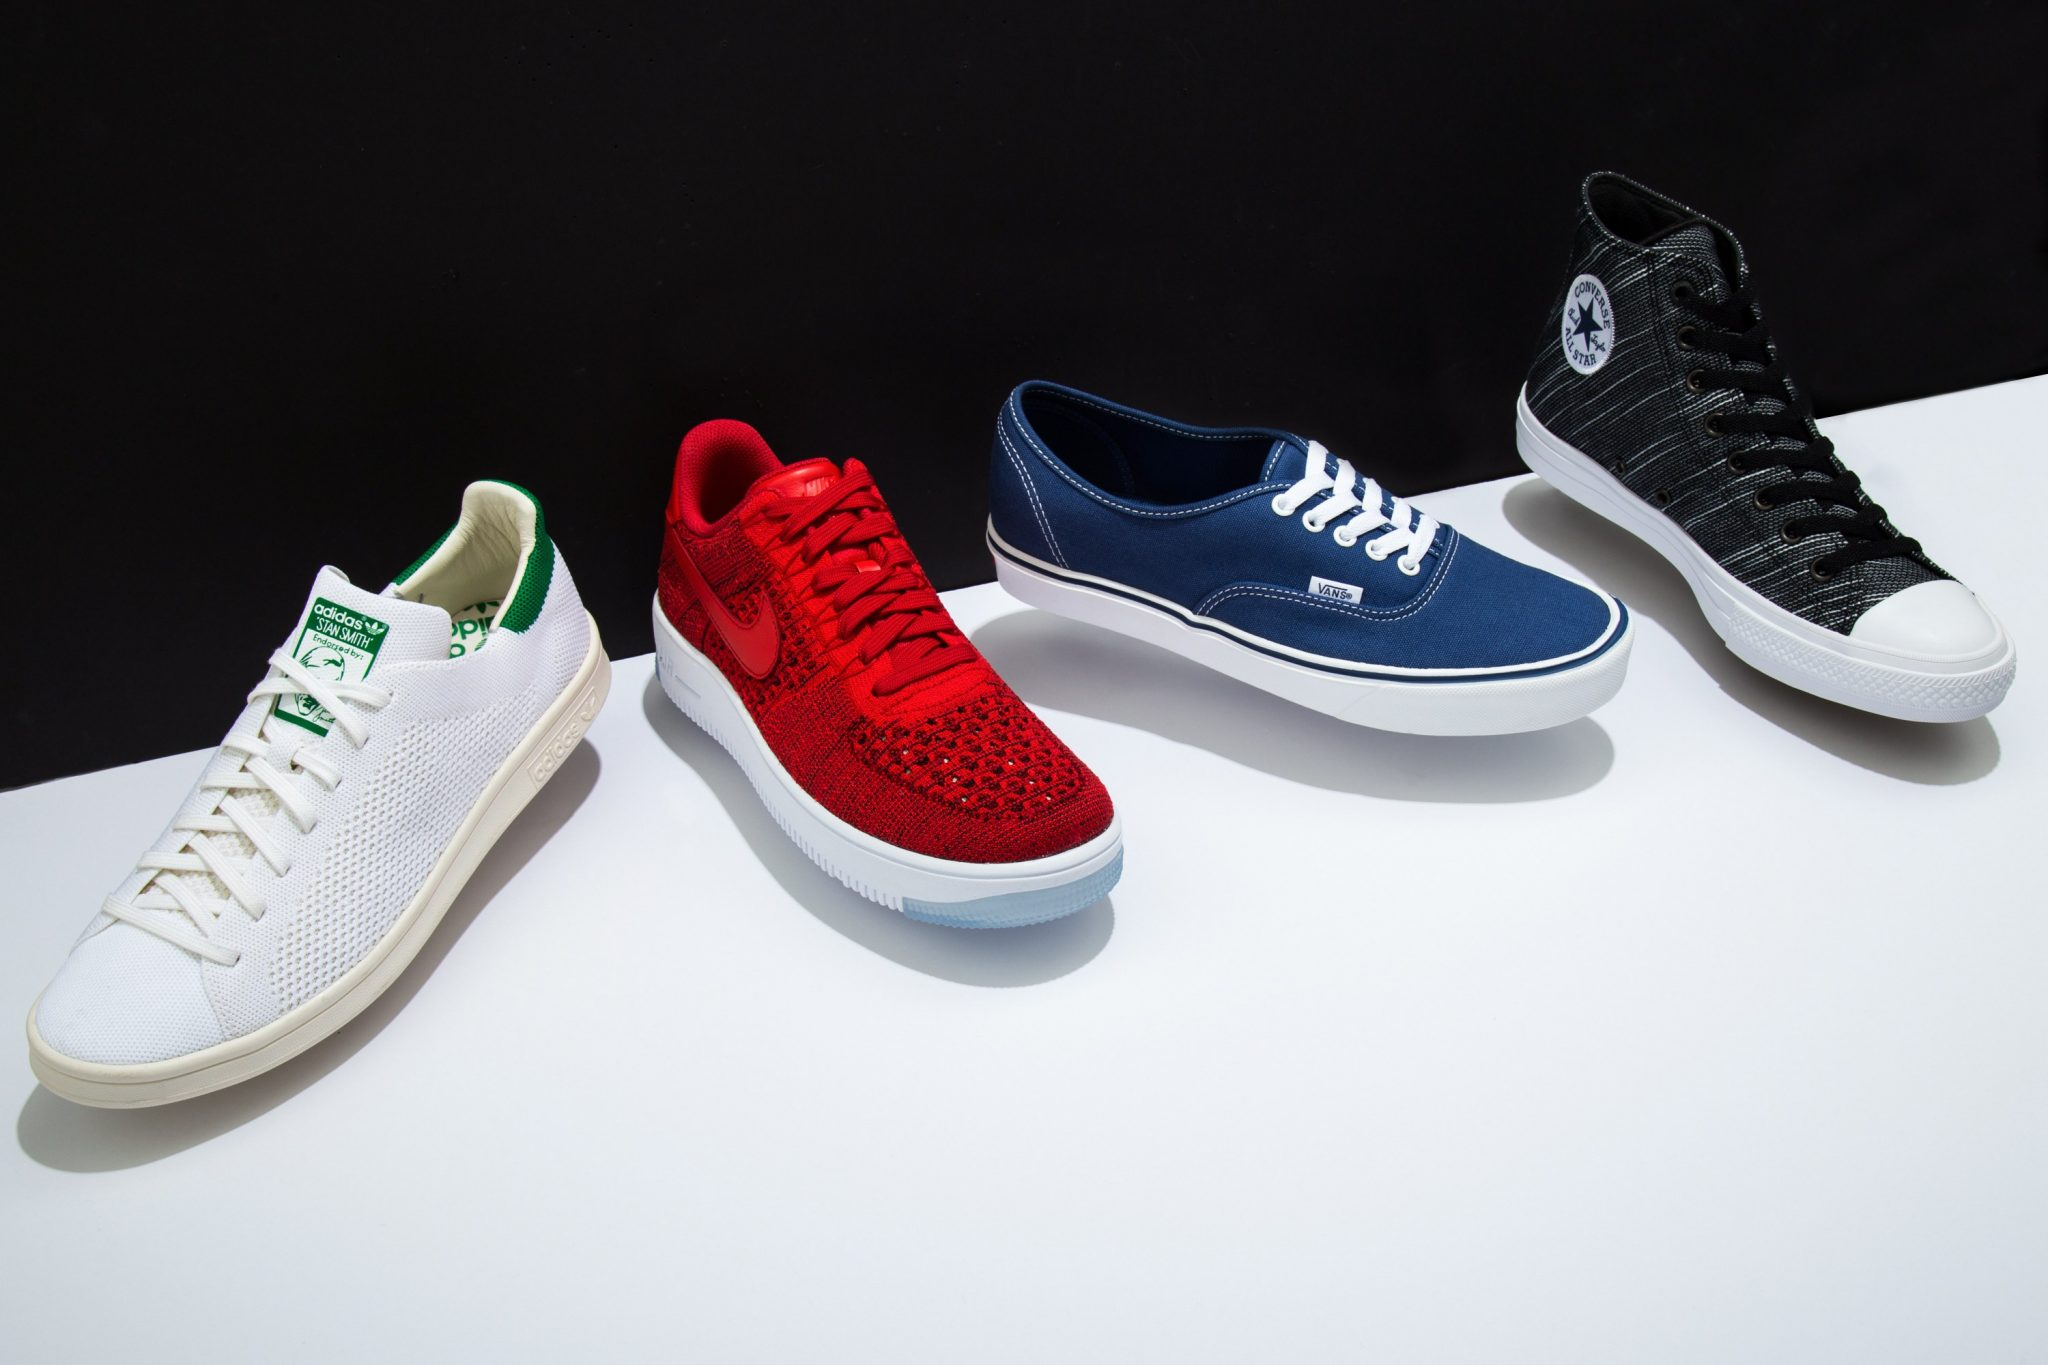 Affordable Fashion Sneakers That All Men Should Have